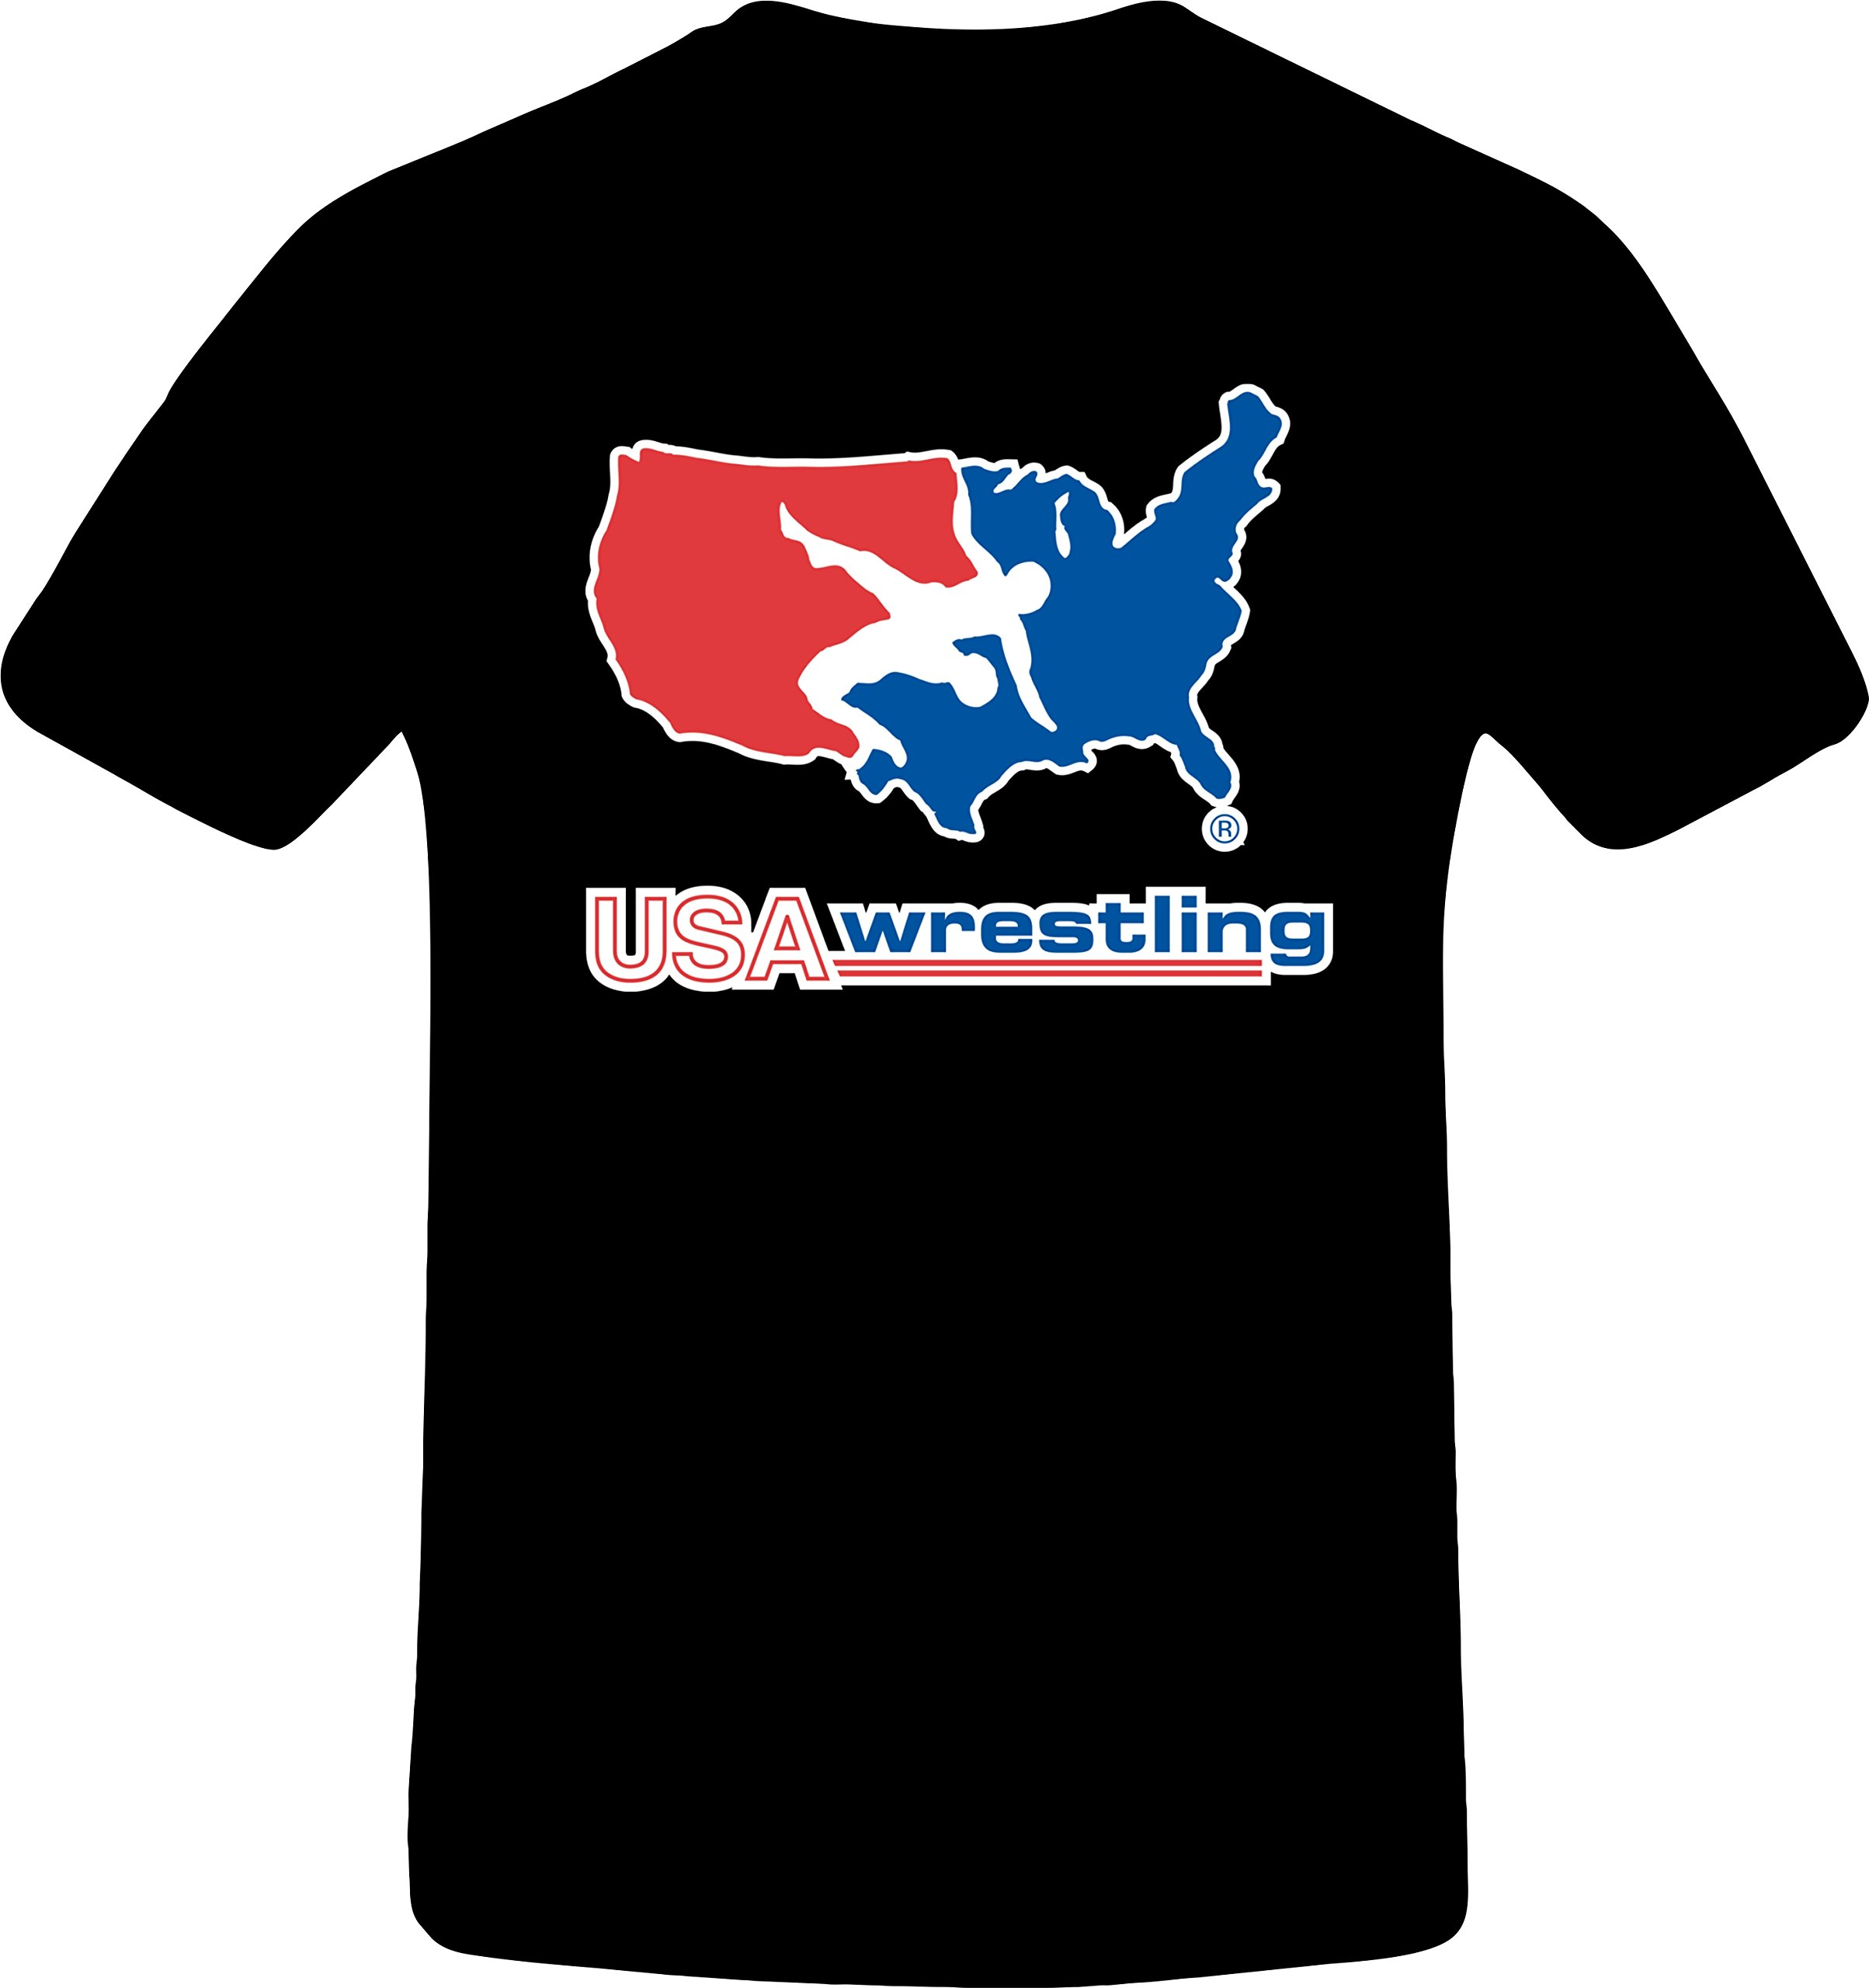 USA Wrestling, Best Quality Costum Tshirt (5XL, BLACK)